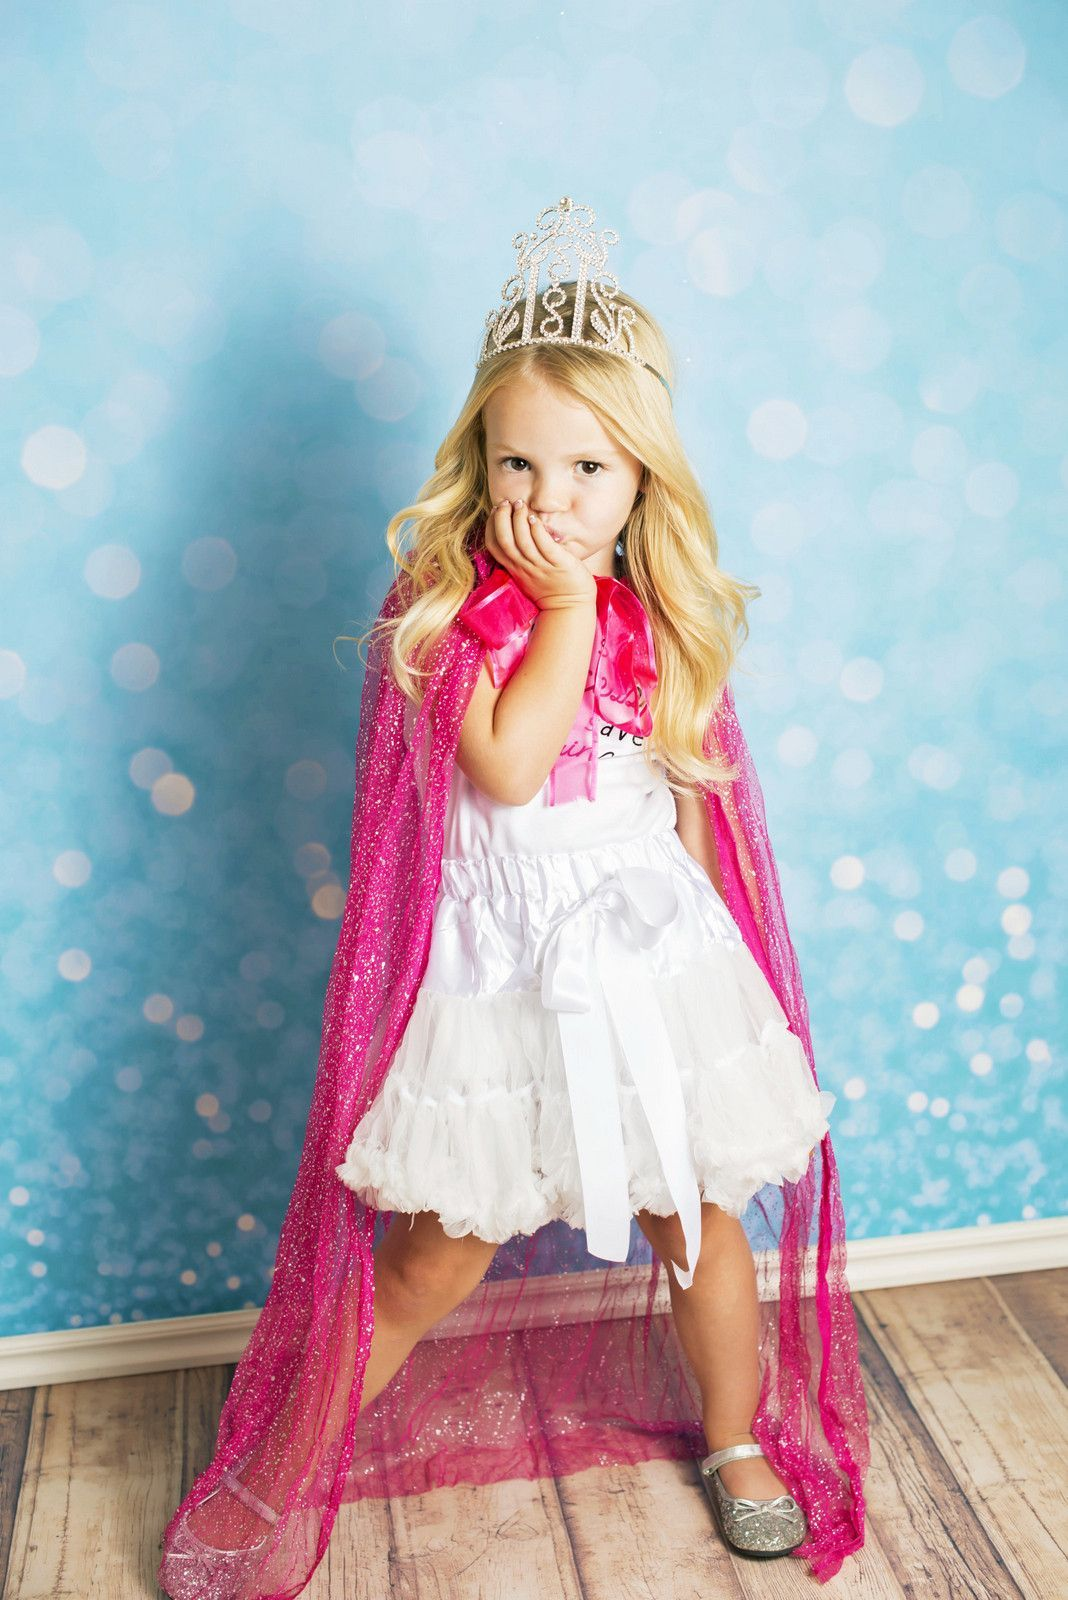 Long flowing, glittery tulle fabric with a bow tie at the